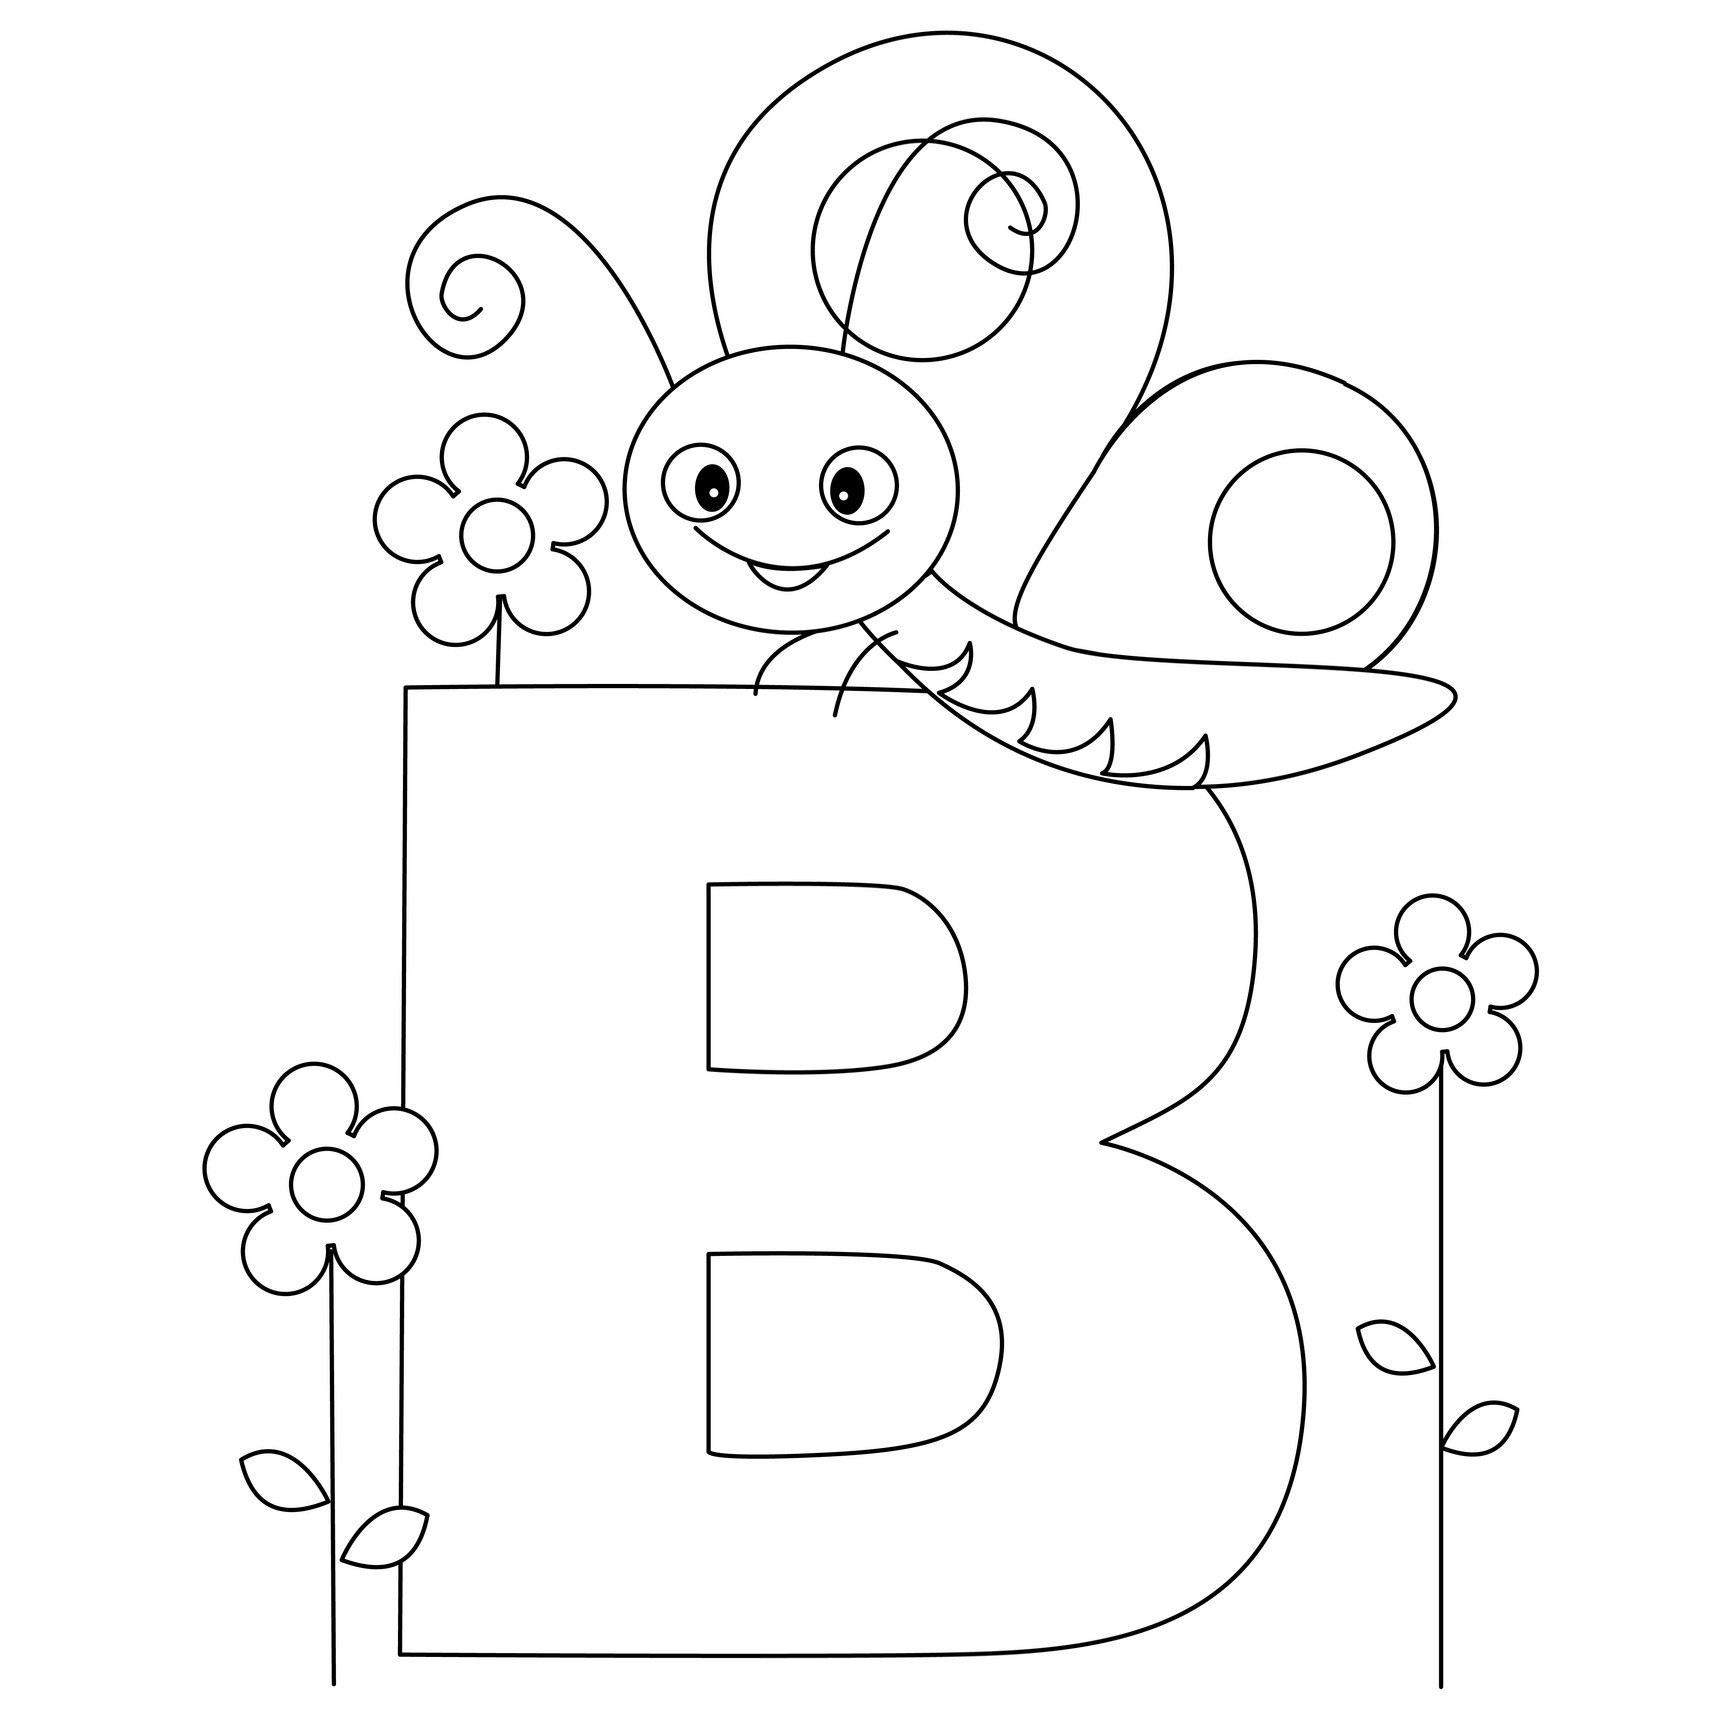 alphabet coloring pages for preschool - photo#14